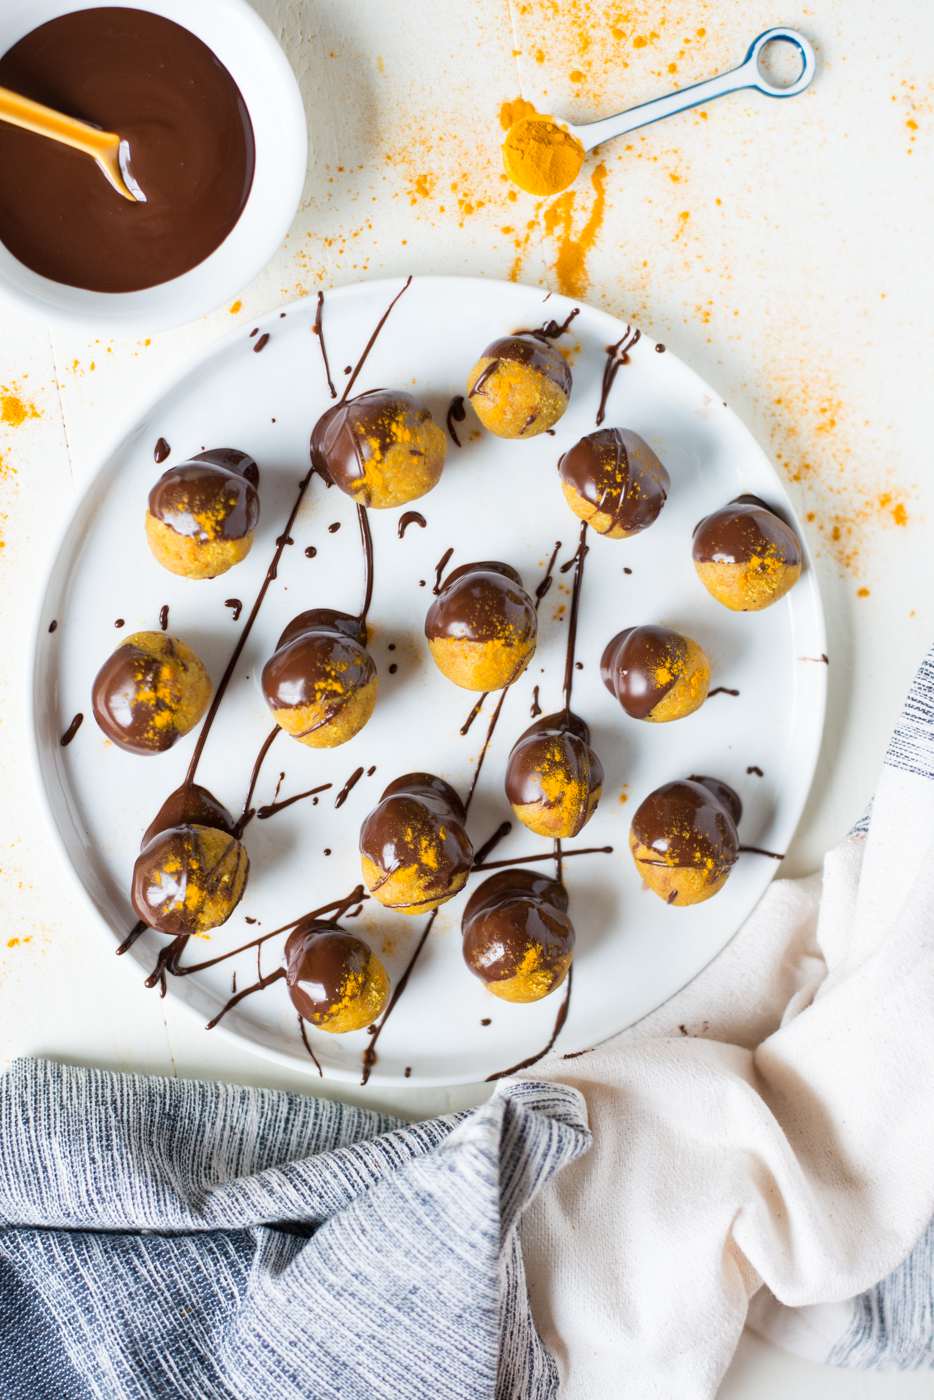 Glow from the inside out with easy, insanely delicious Chocolate Covered Golden Glow Bites! grain-free, paleo, snack, vegan, turmeric